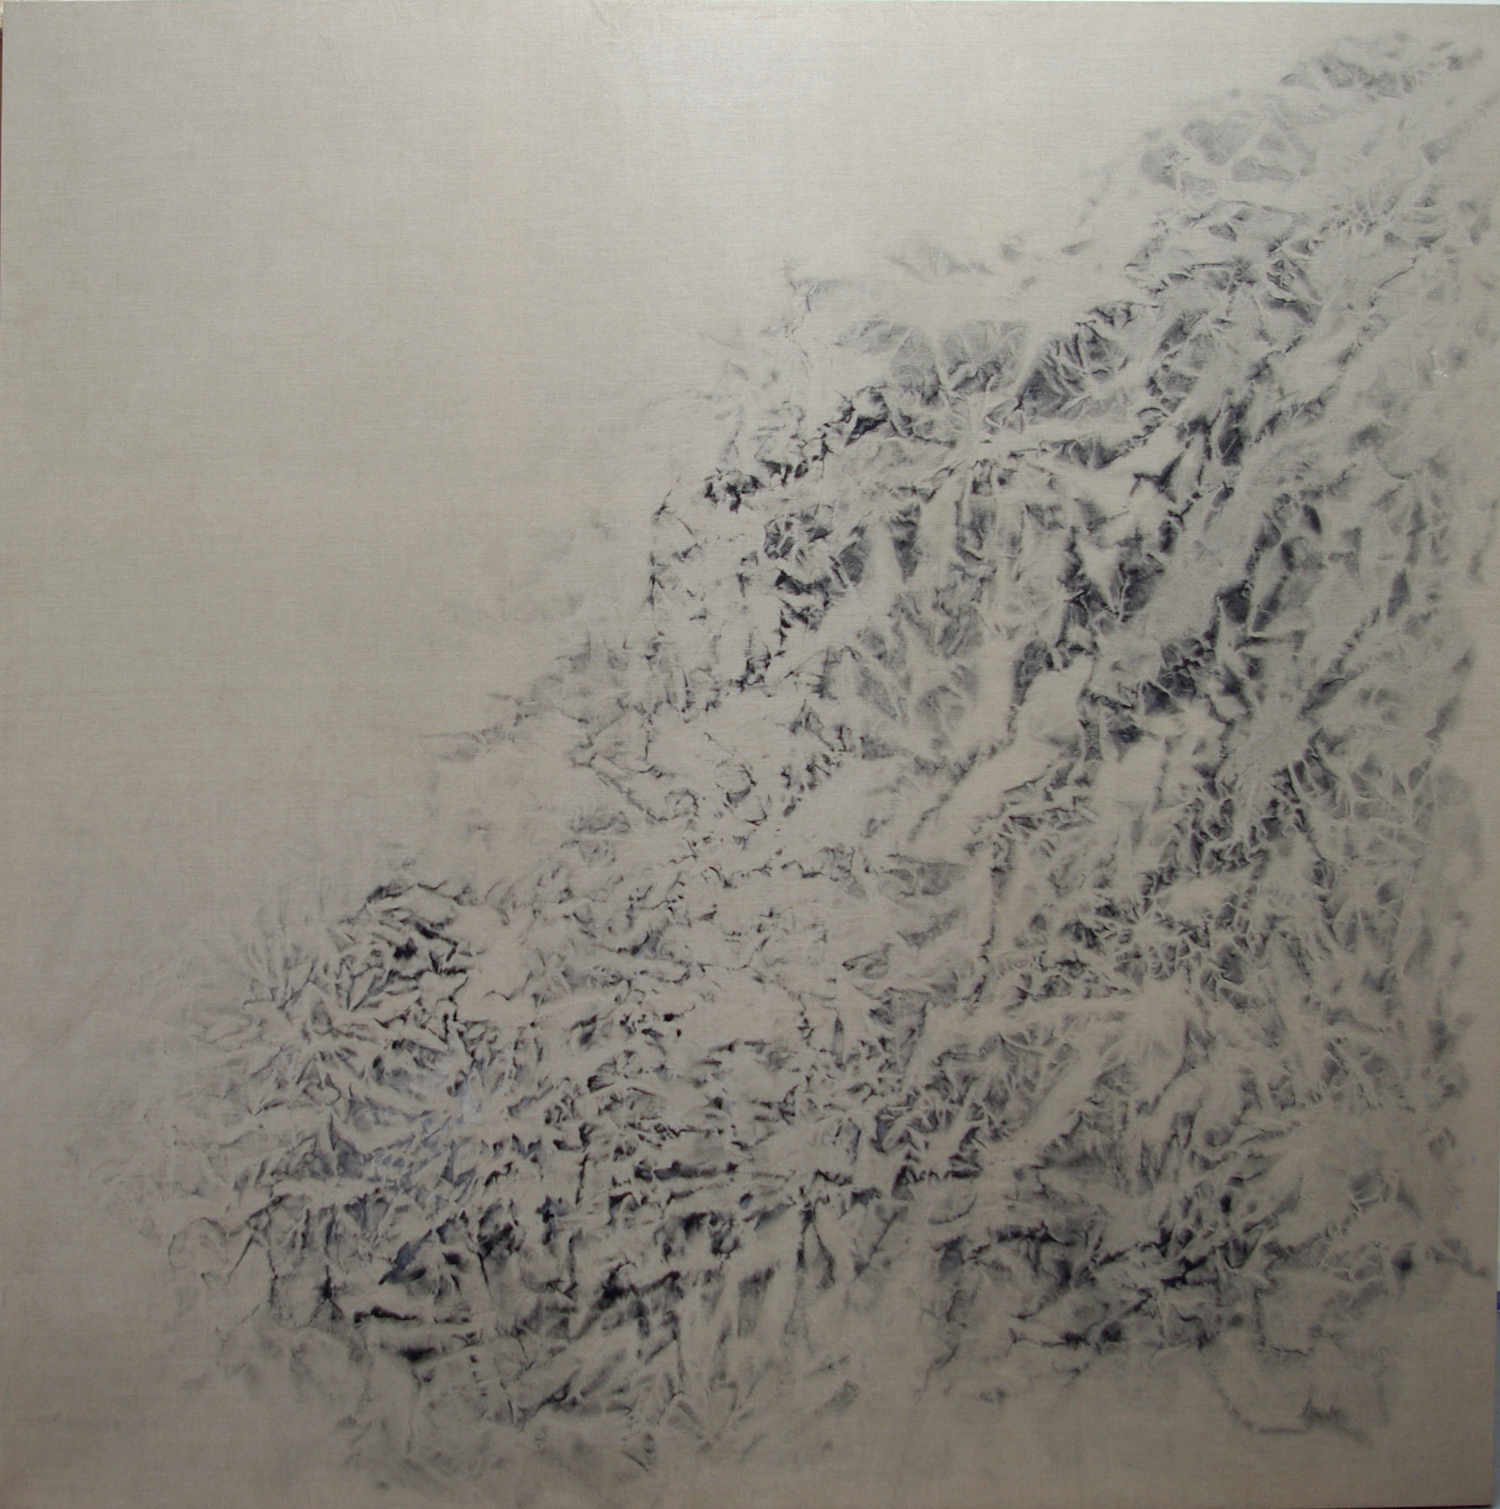 #1310-2014 Oil, alkyd, wax on canvas Dimension: 78 x 78 inches